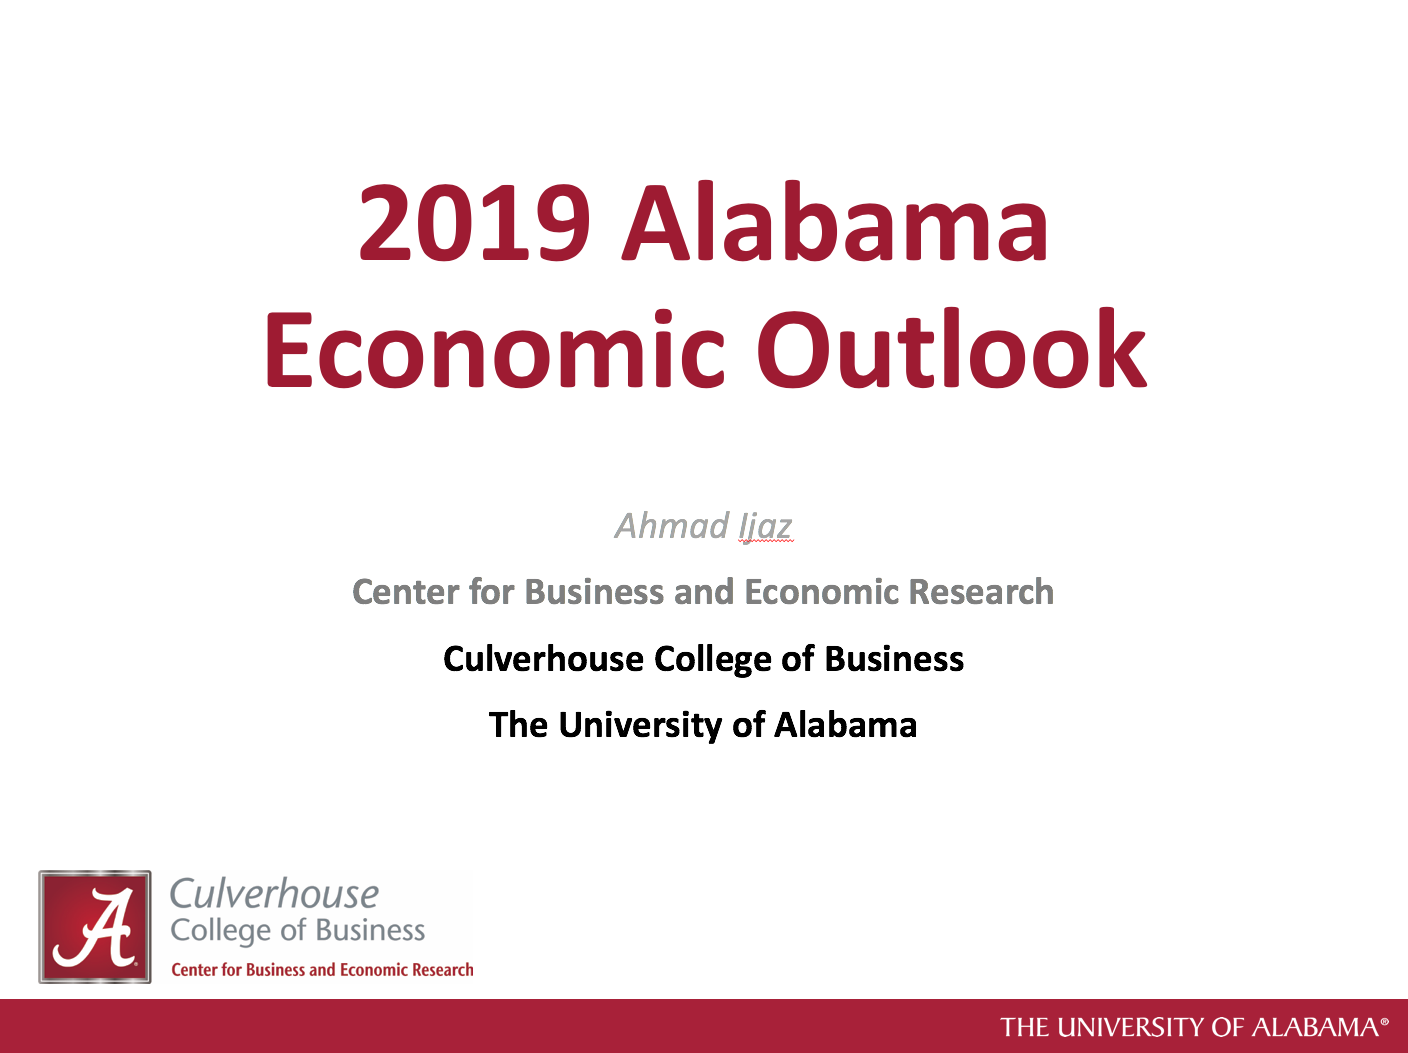 2019 Alabama Economic Outlook Presentation